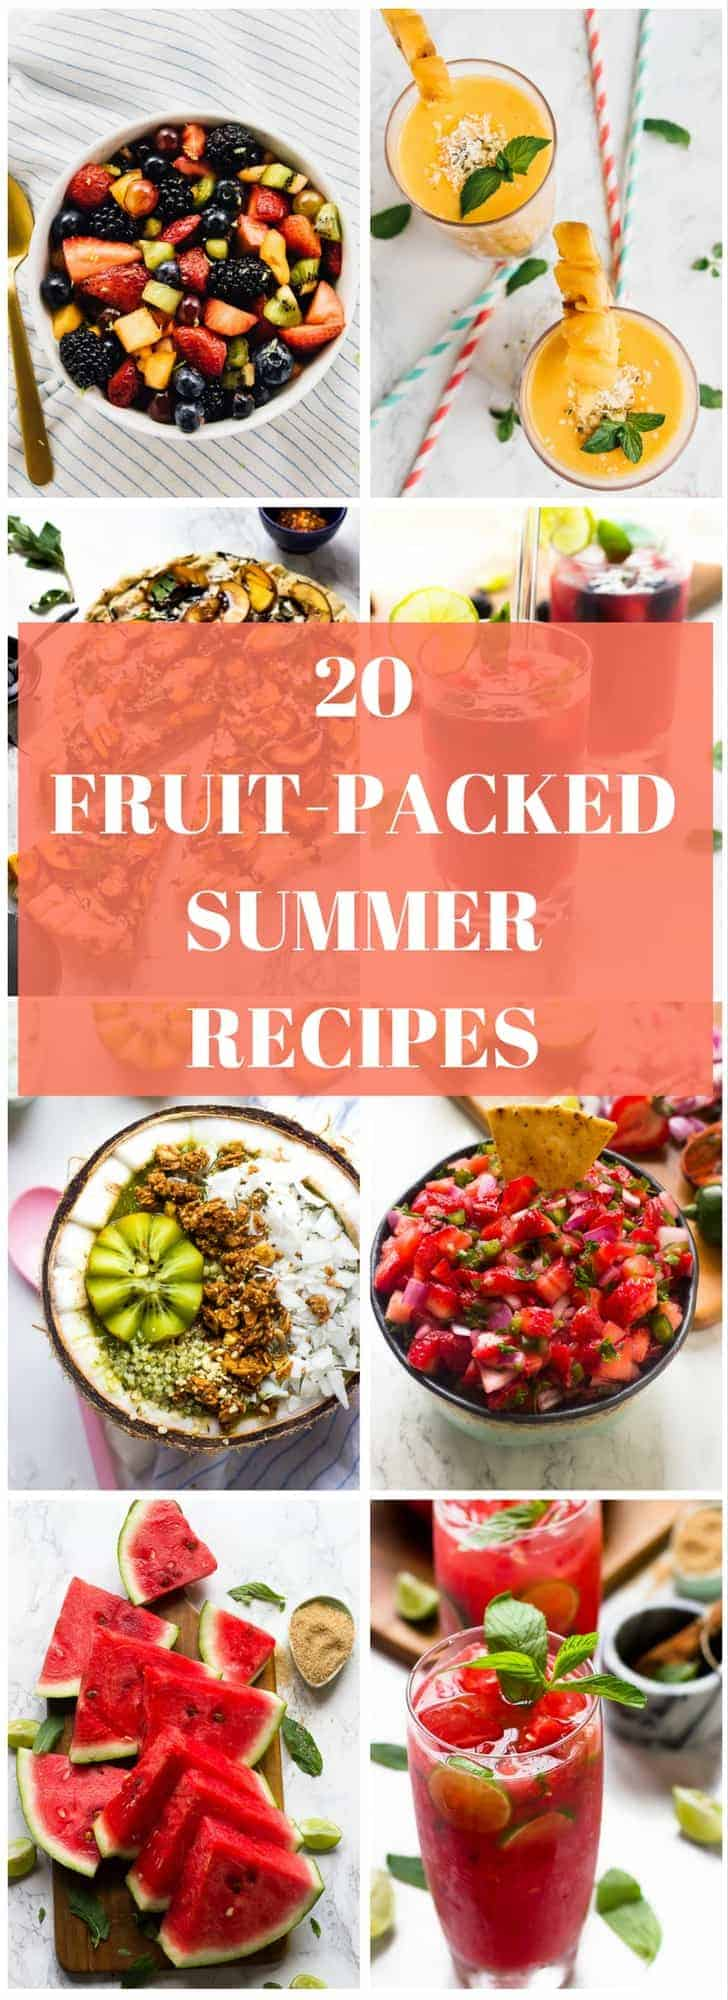 Try these20 Fruit-Packed Summer Recipes for Summer 2017! They are loaded with so much juicy flavour and will please your family and friends!